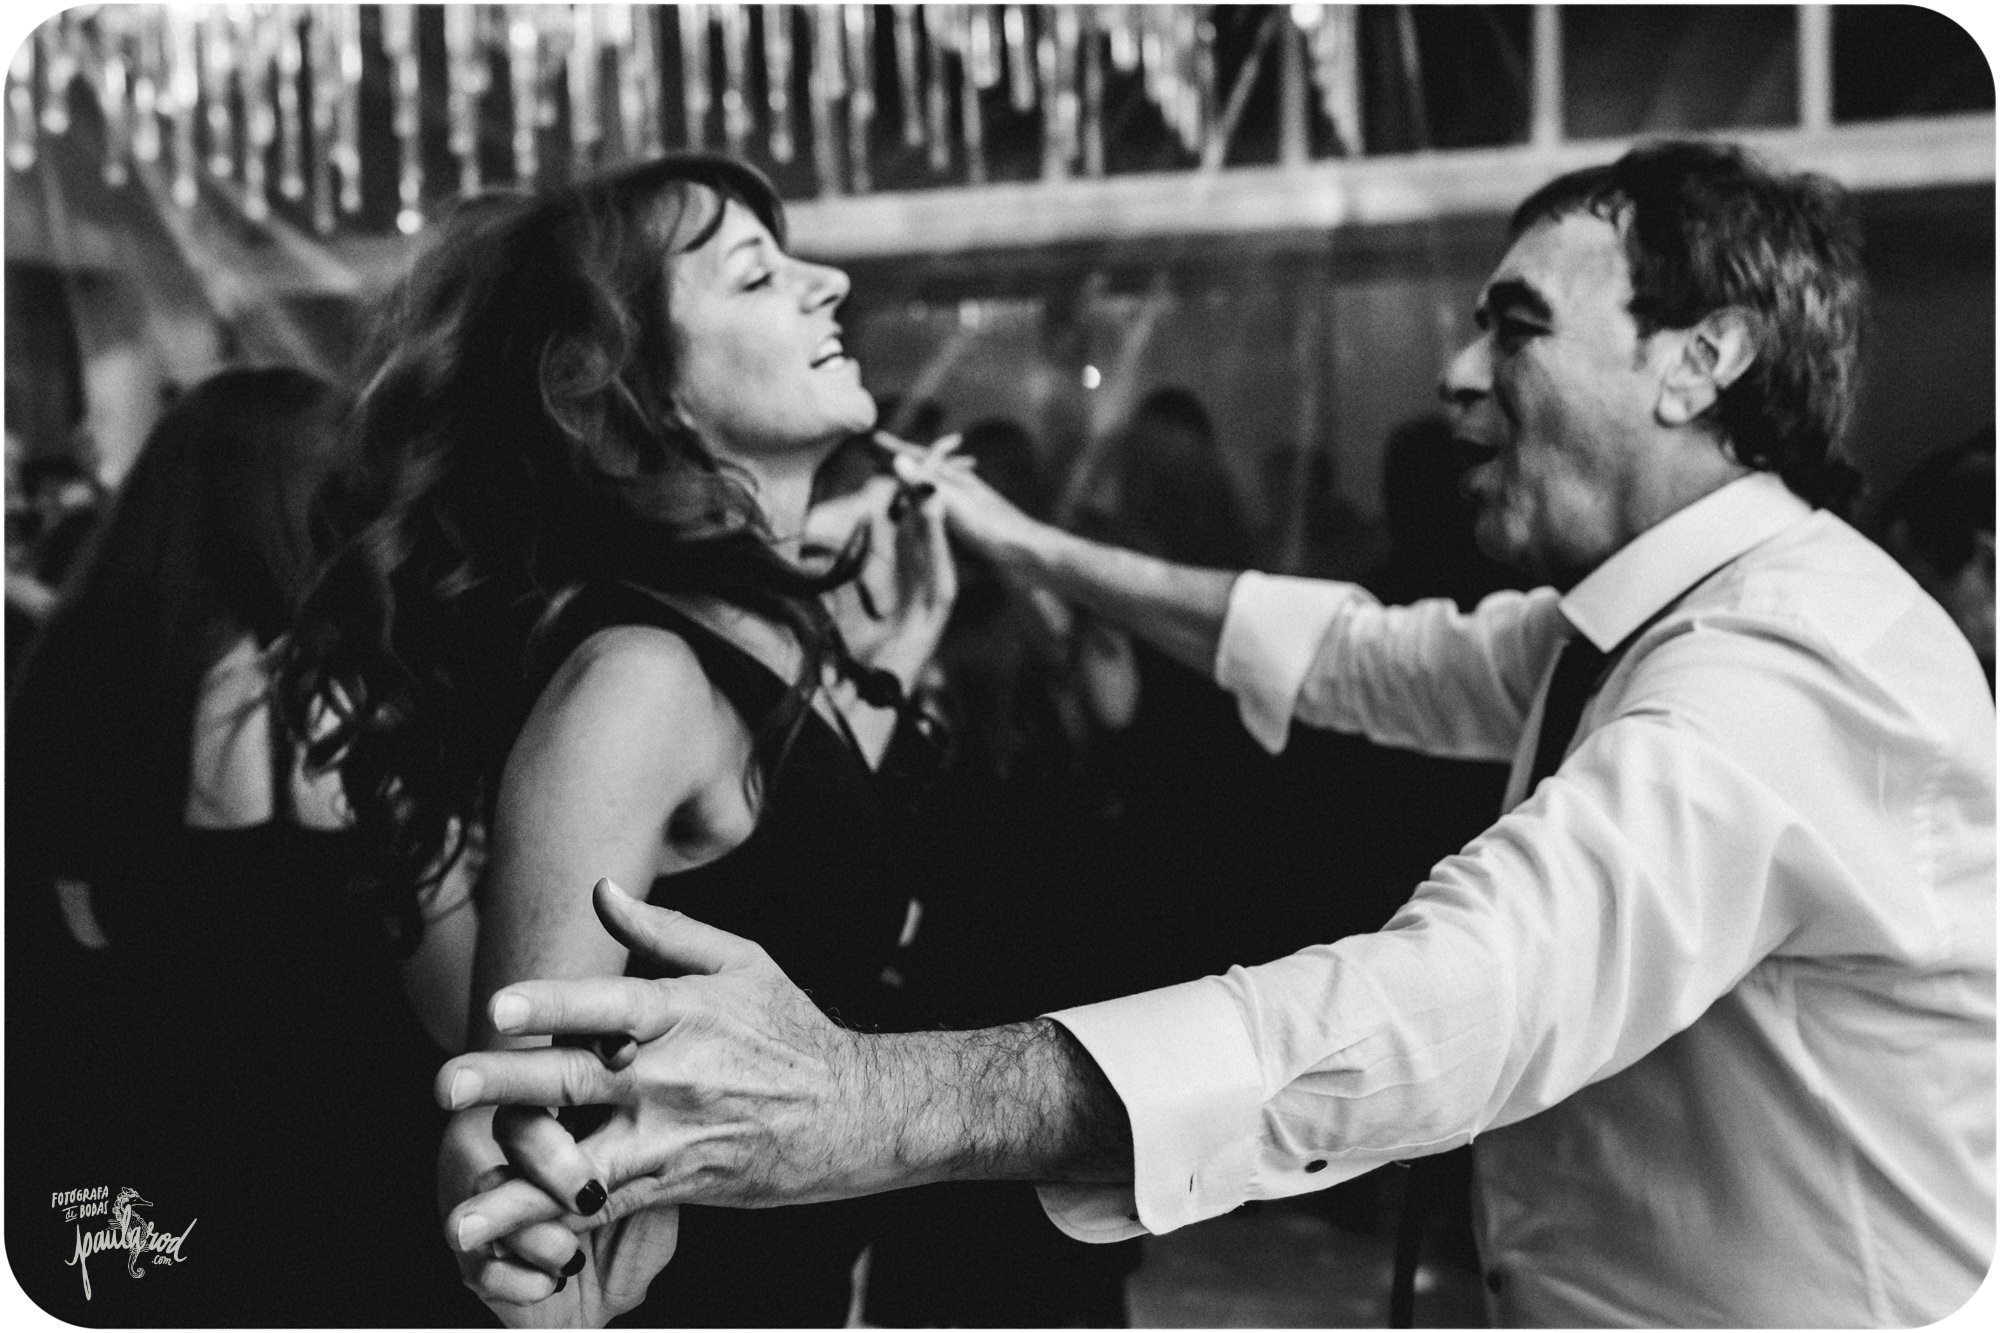 fotografia-documental-para-eventos-sociales-4 (1).jpg